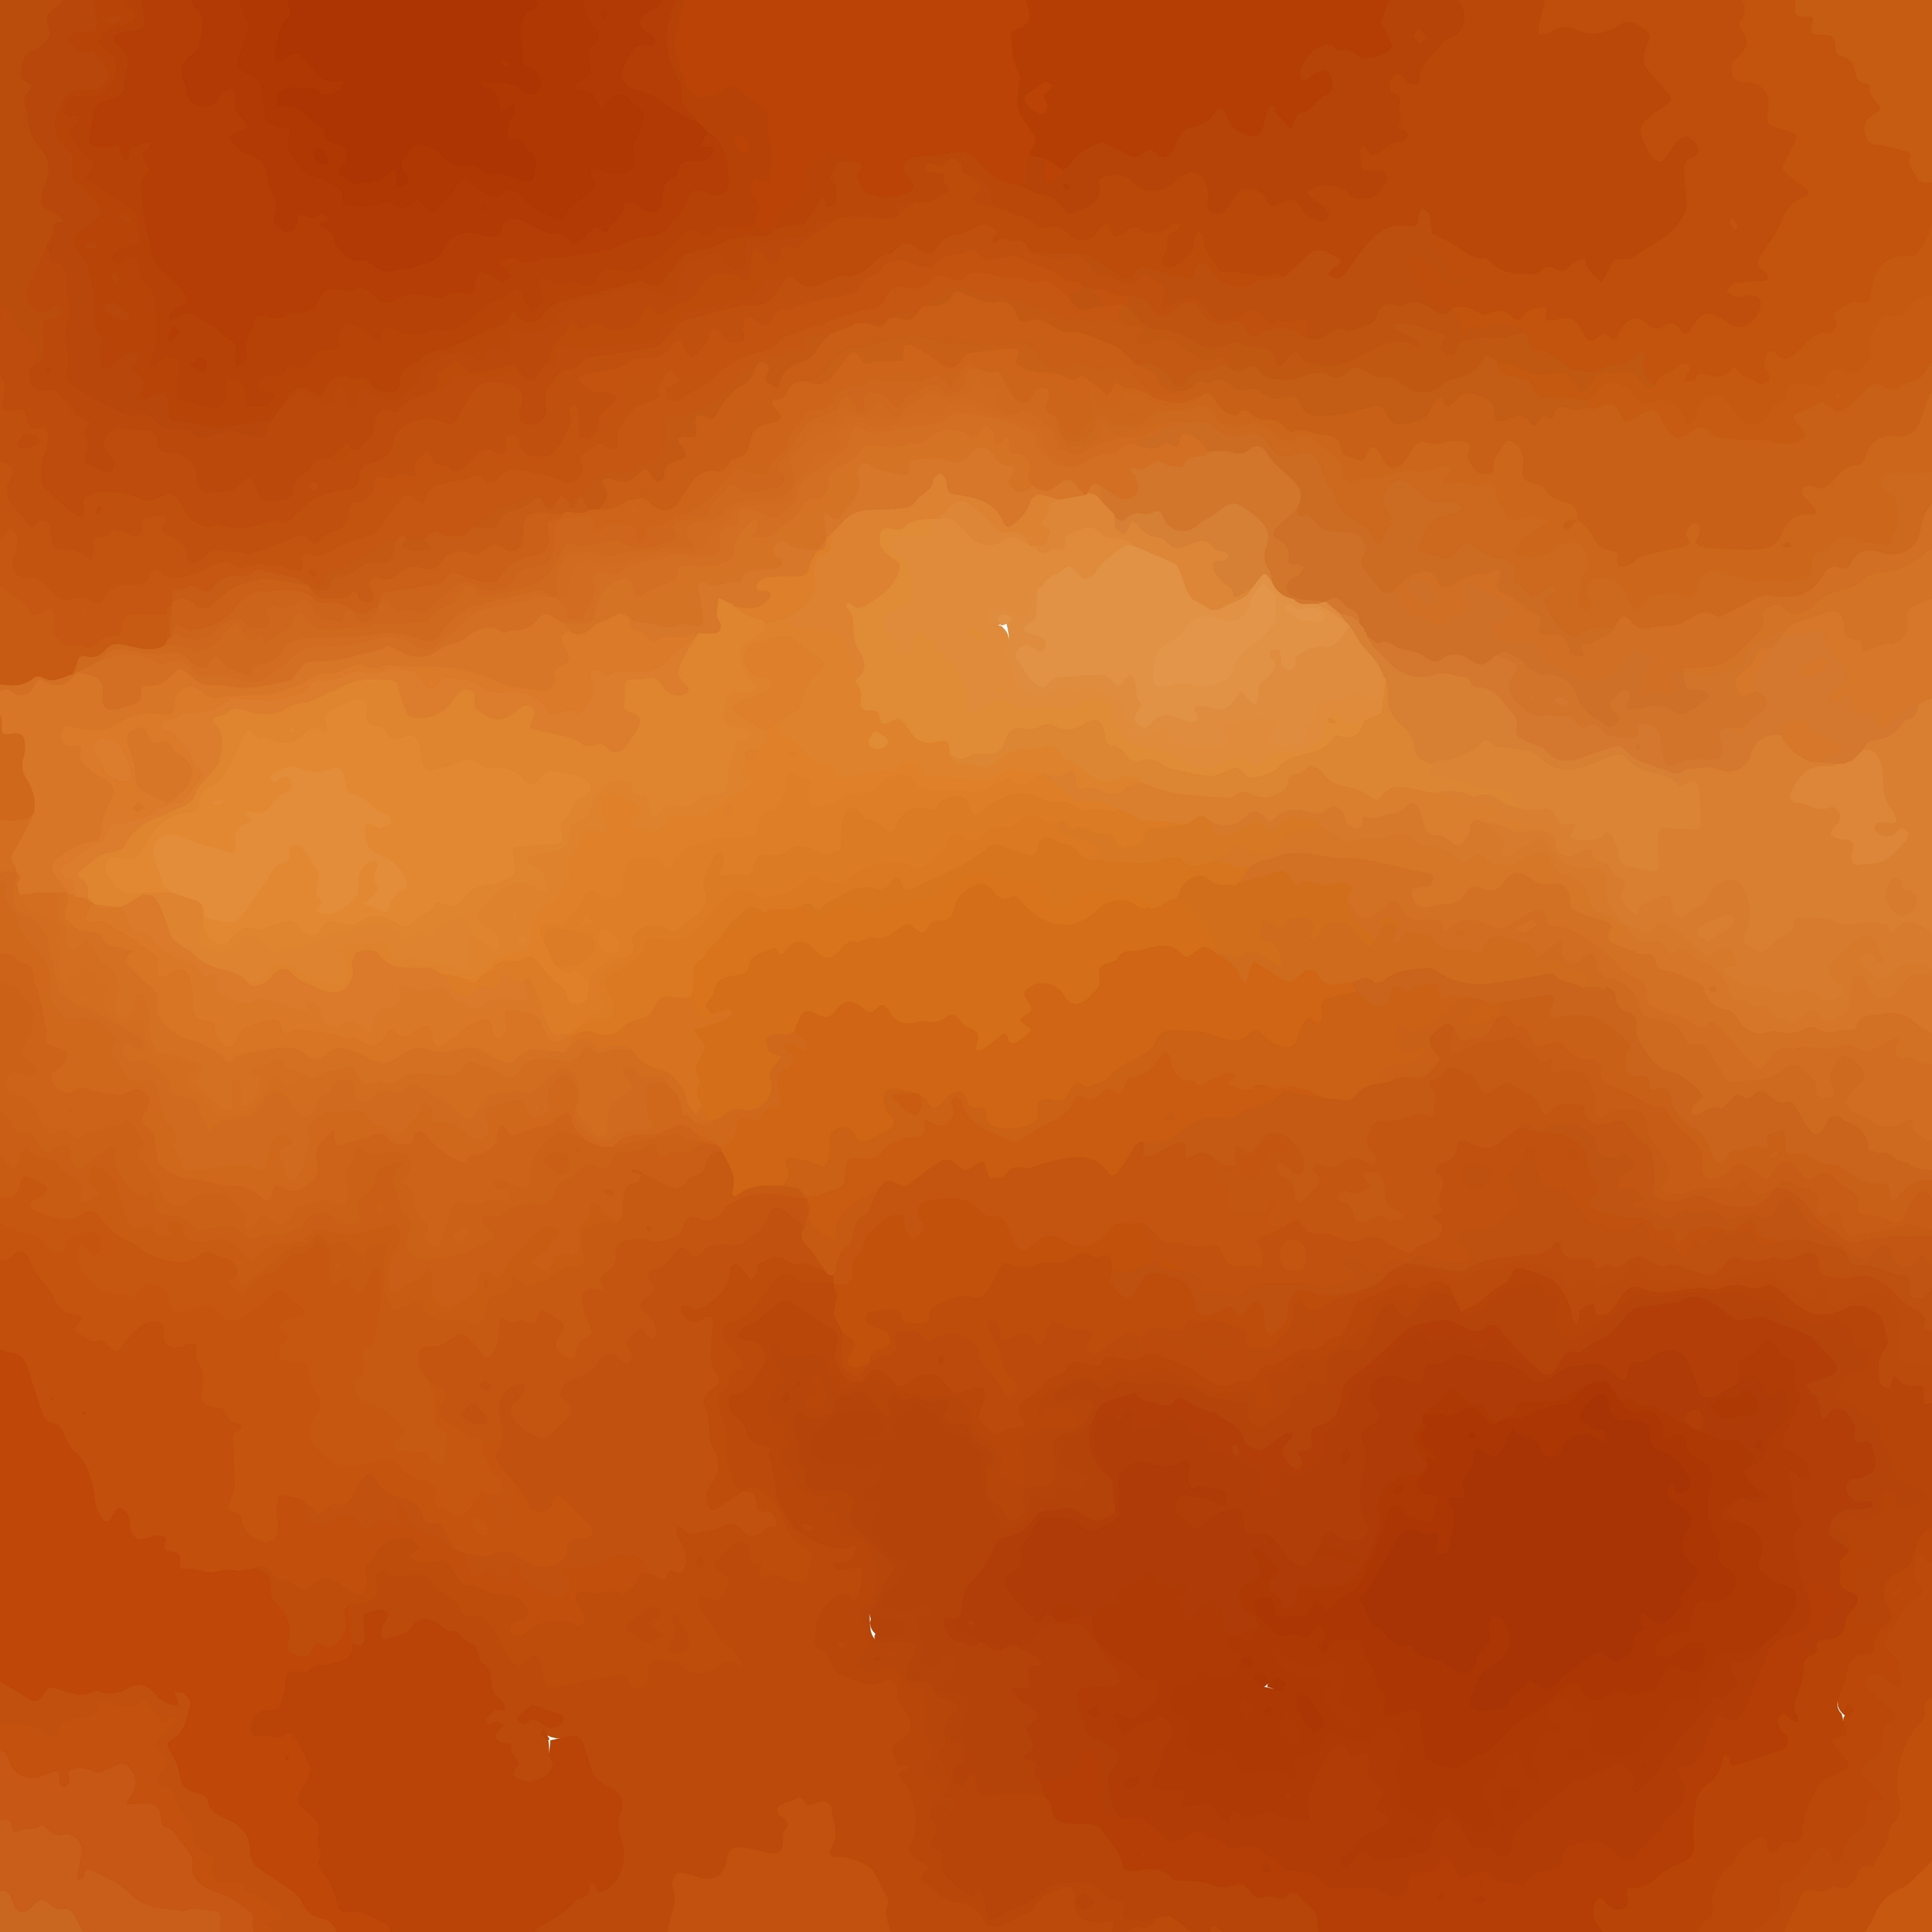 Watercolor Orange Abstract iPad Wallpaper